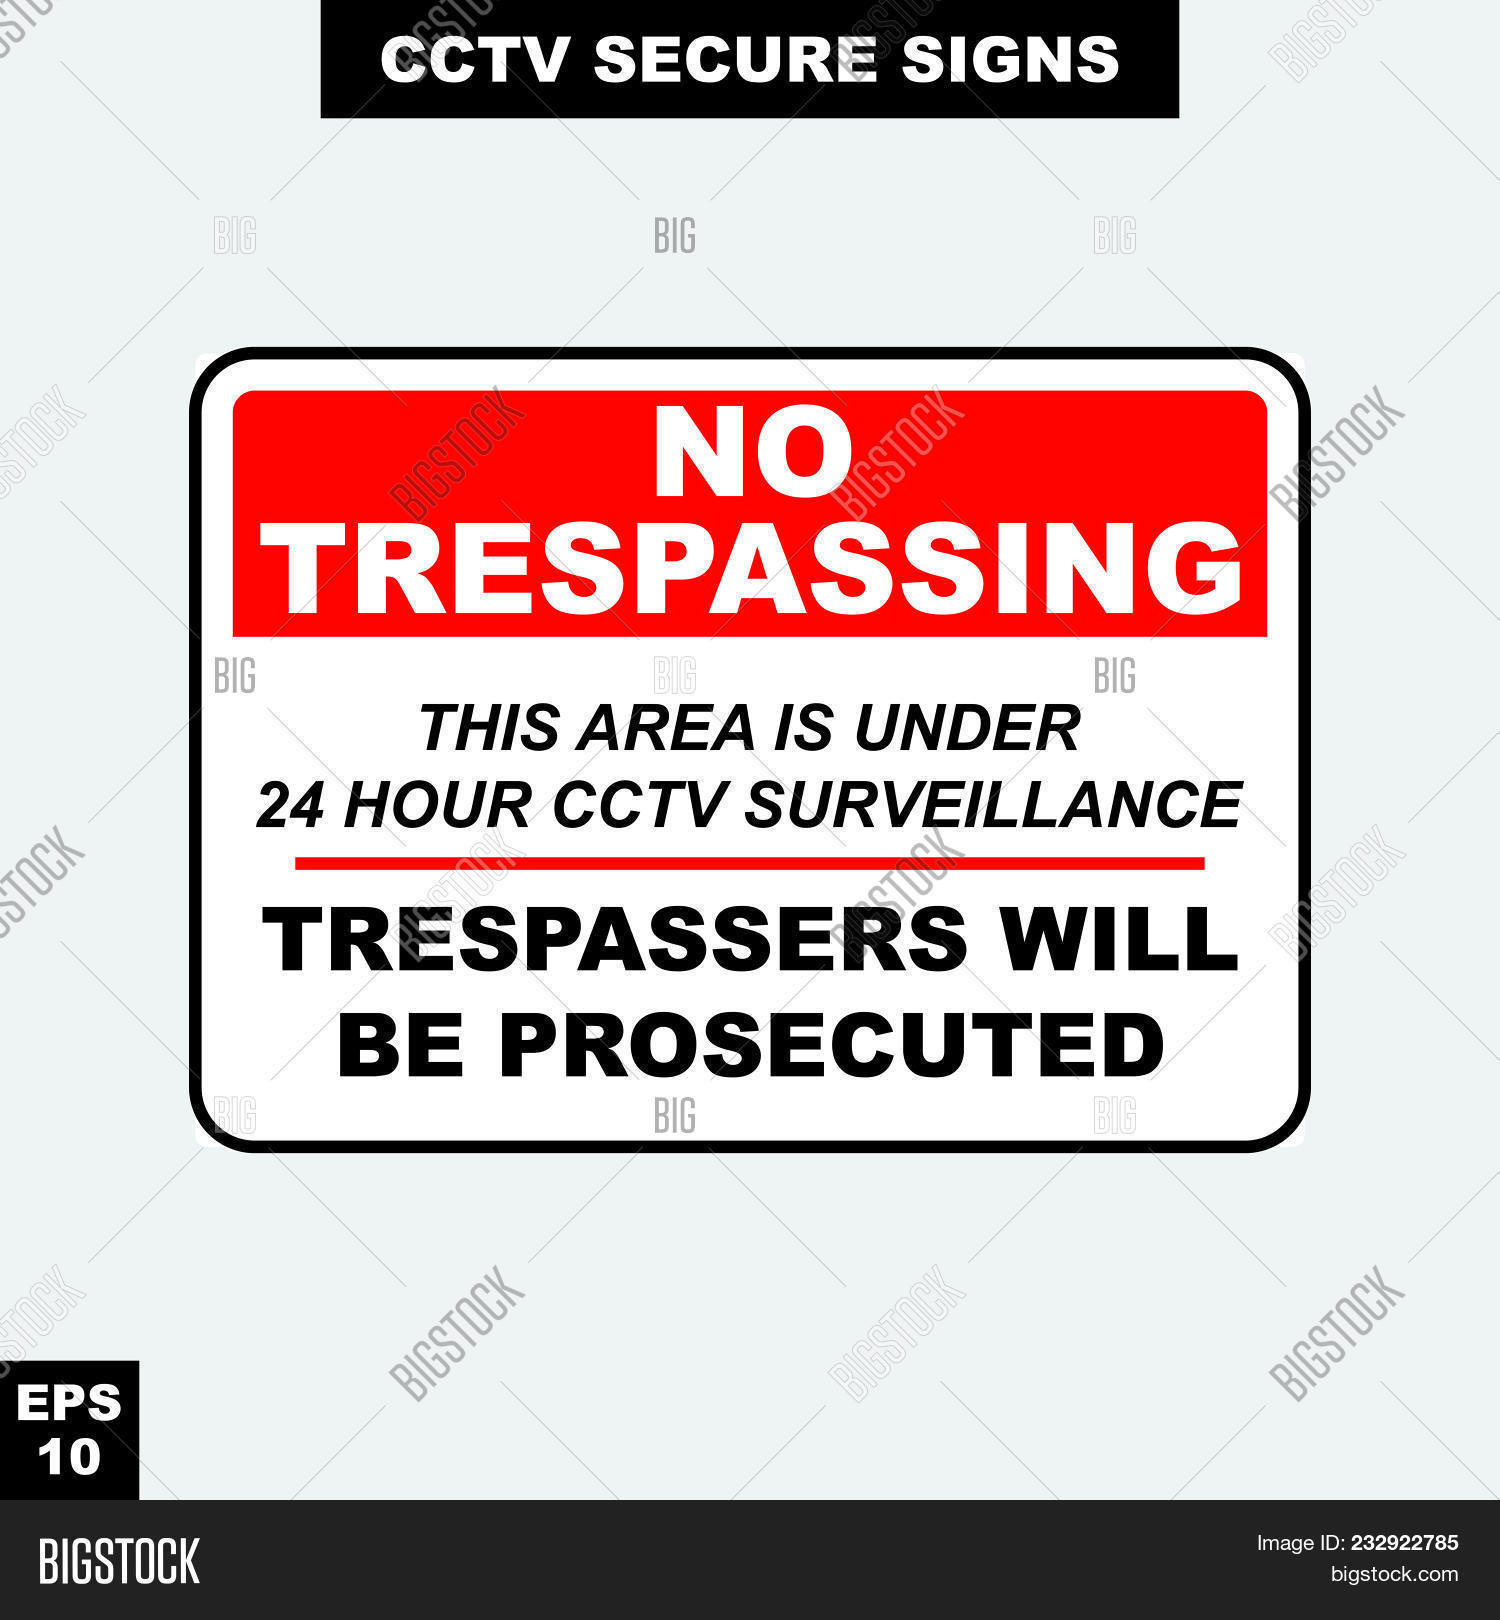 Print Vector & Photo (Free Trial) | Bigstock - Printable Video Surveillance Signs Free